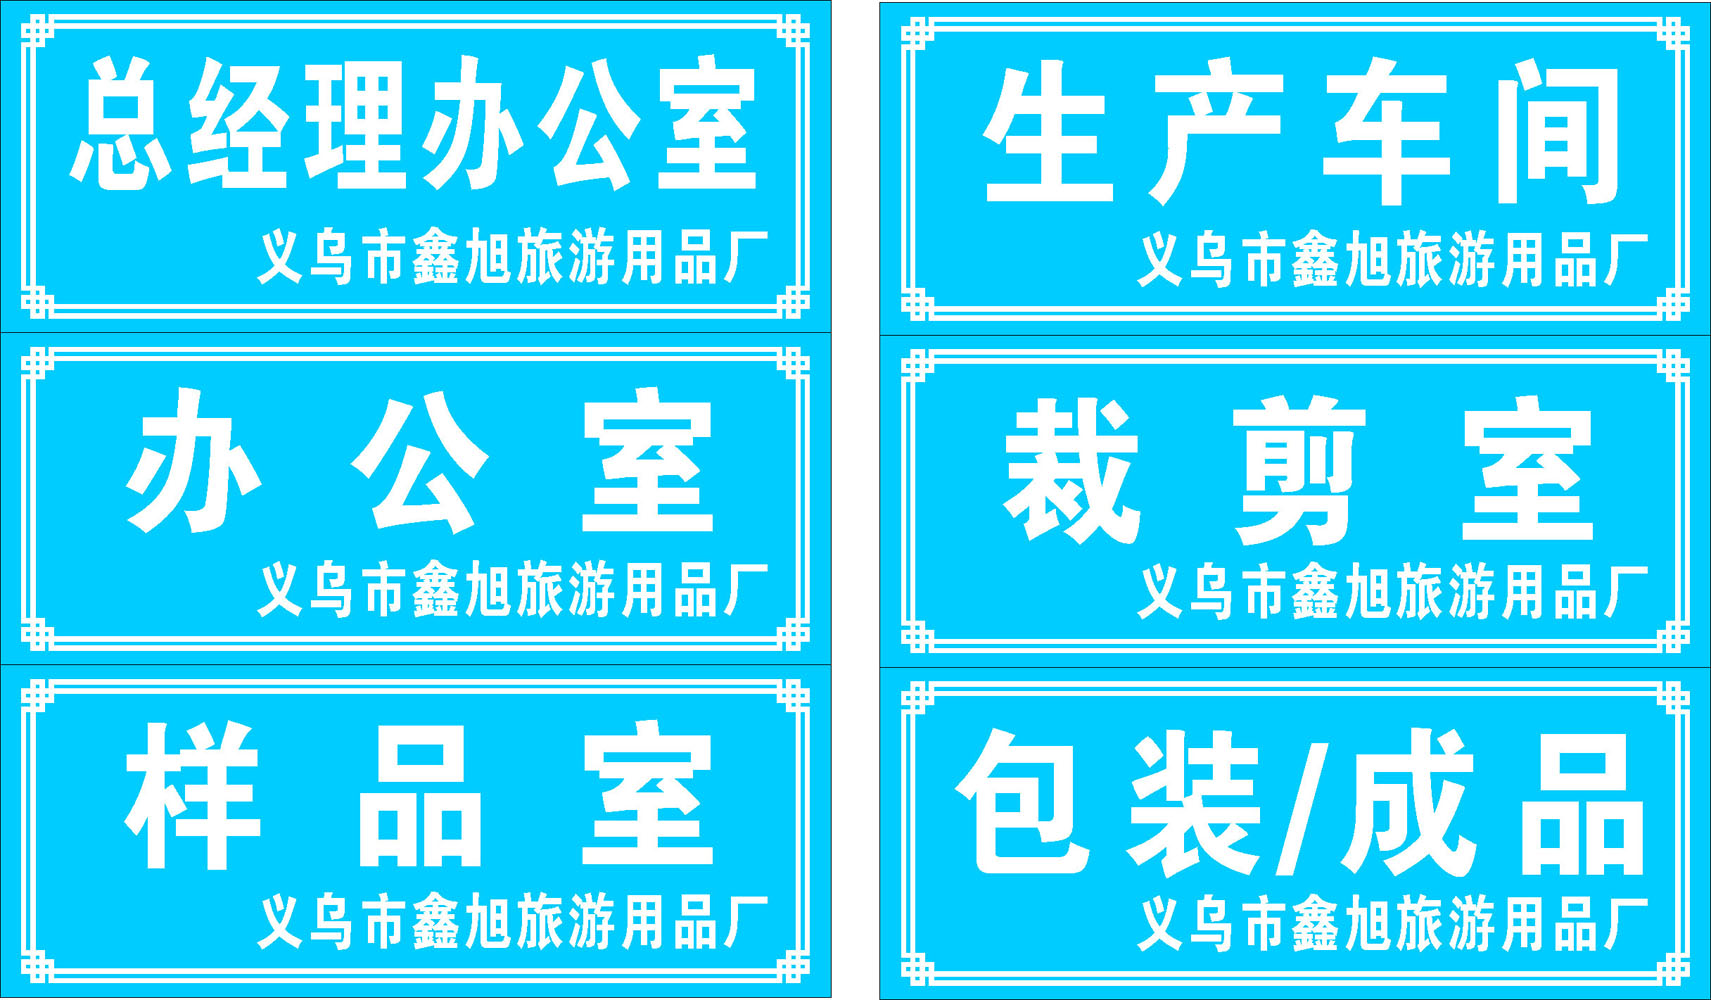 699 posters printed poster panels inkjet sticker material 805 tourism supplies plant licensing department